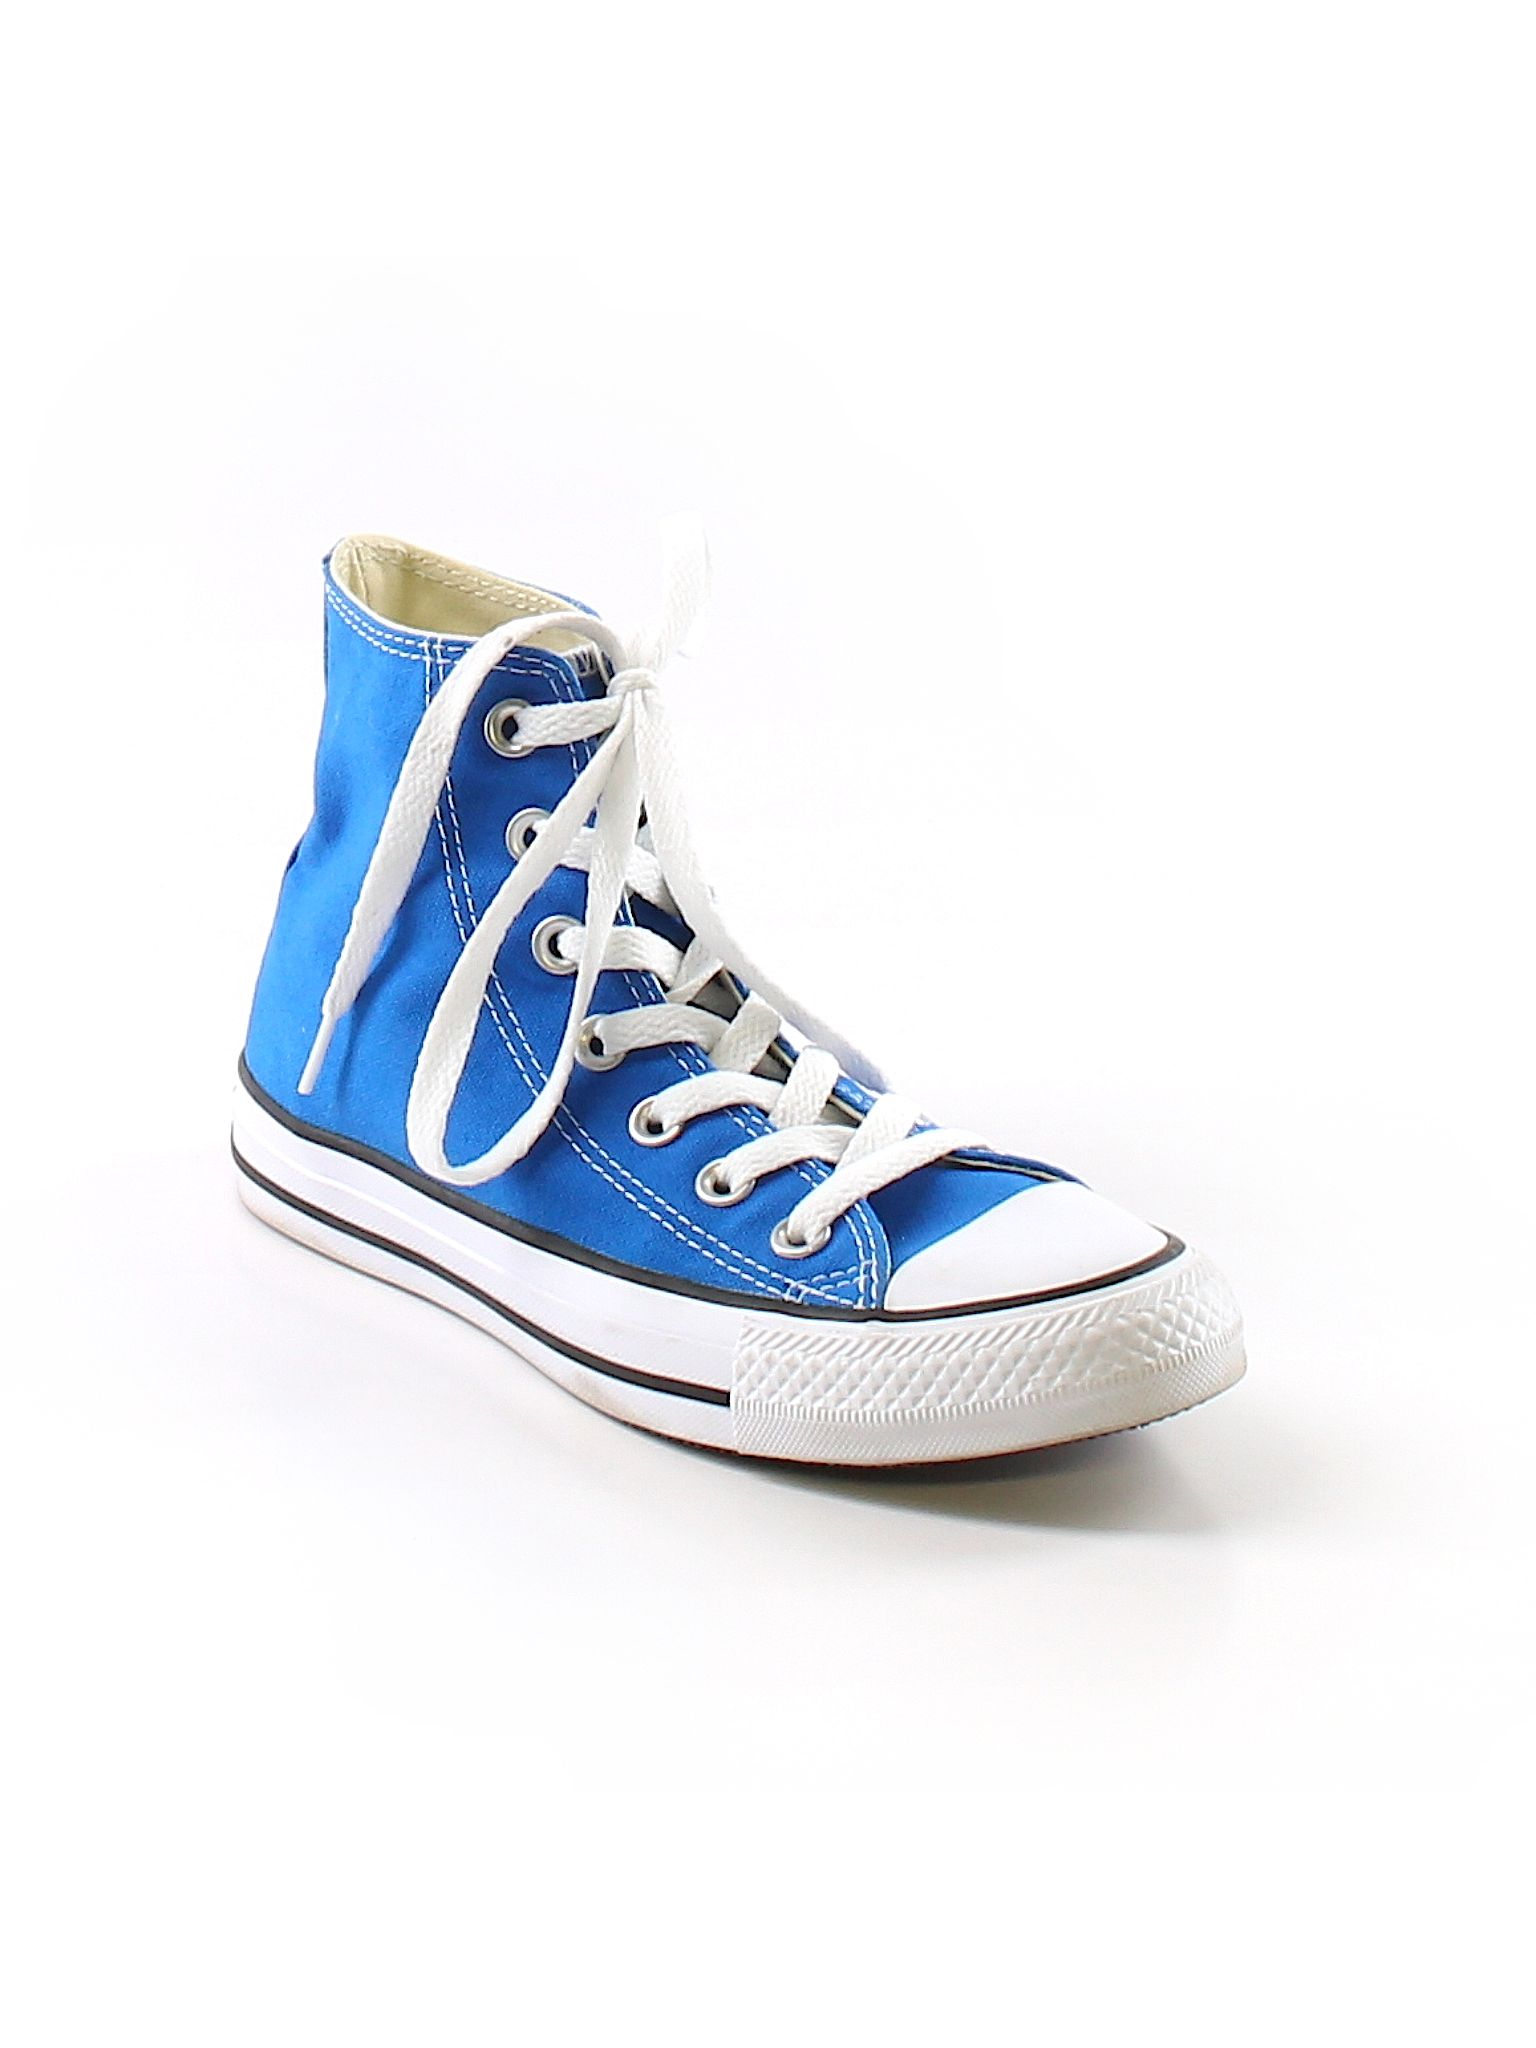 Converse Solid Blue Sneakers Size 5